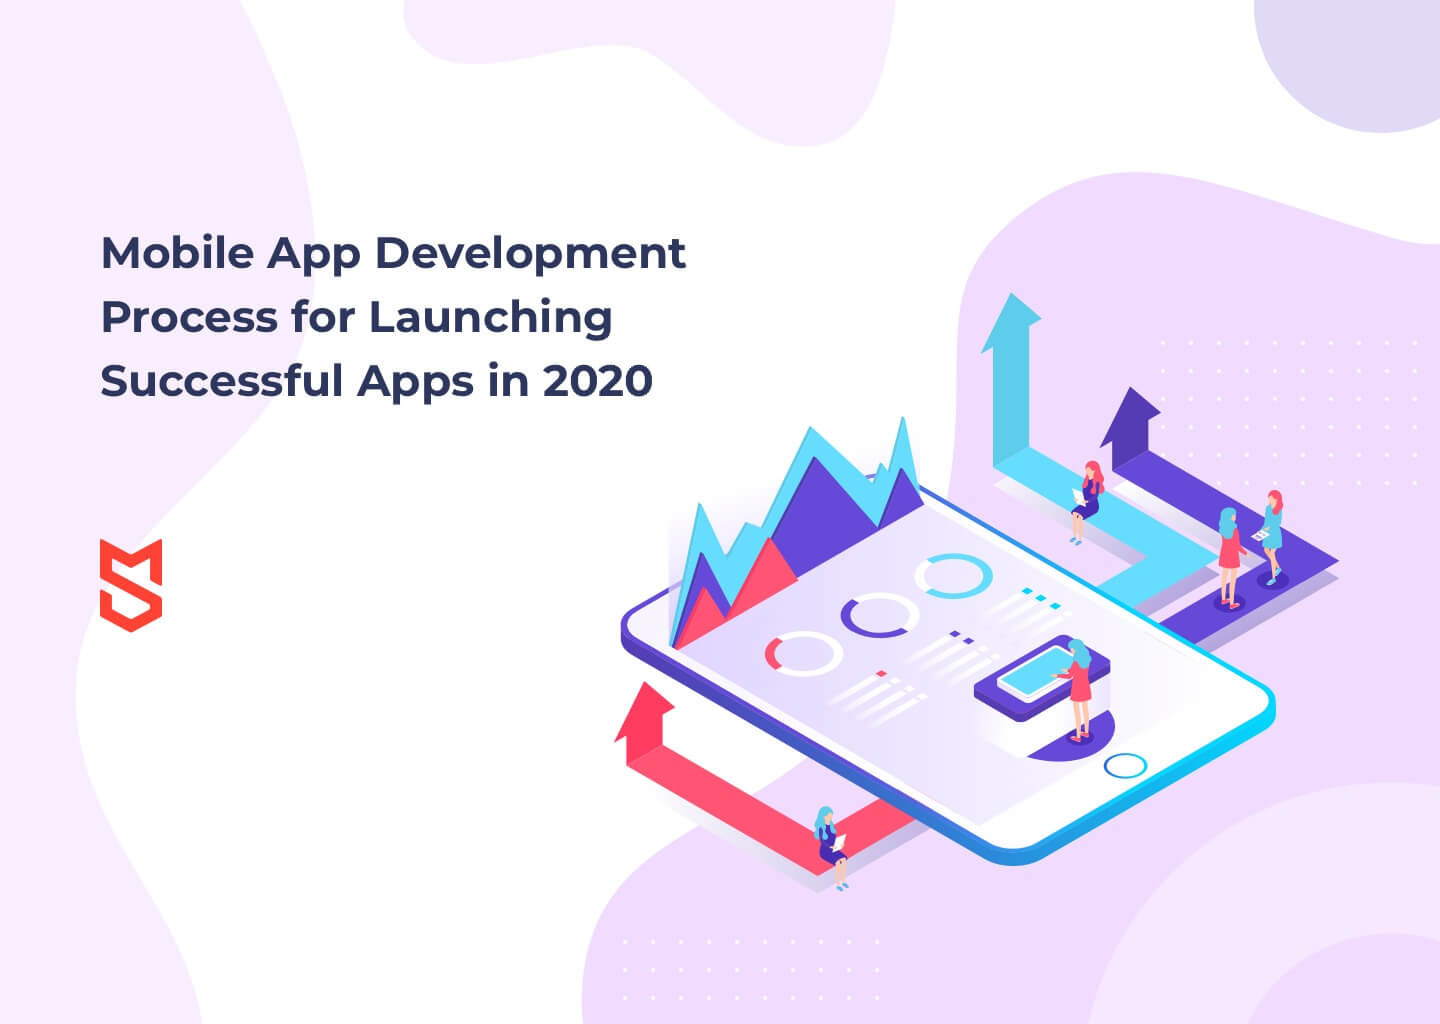 Mobile App Development Process for Launching Successful Apps in 2020